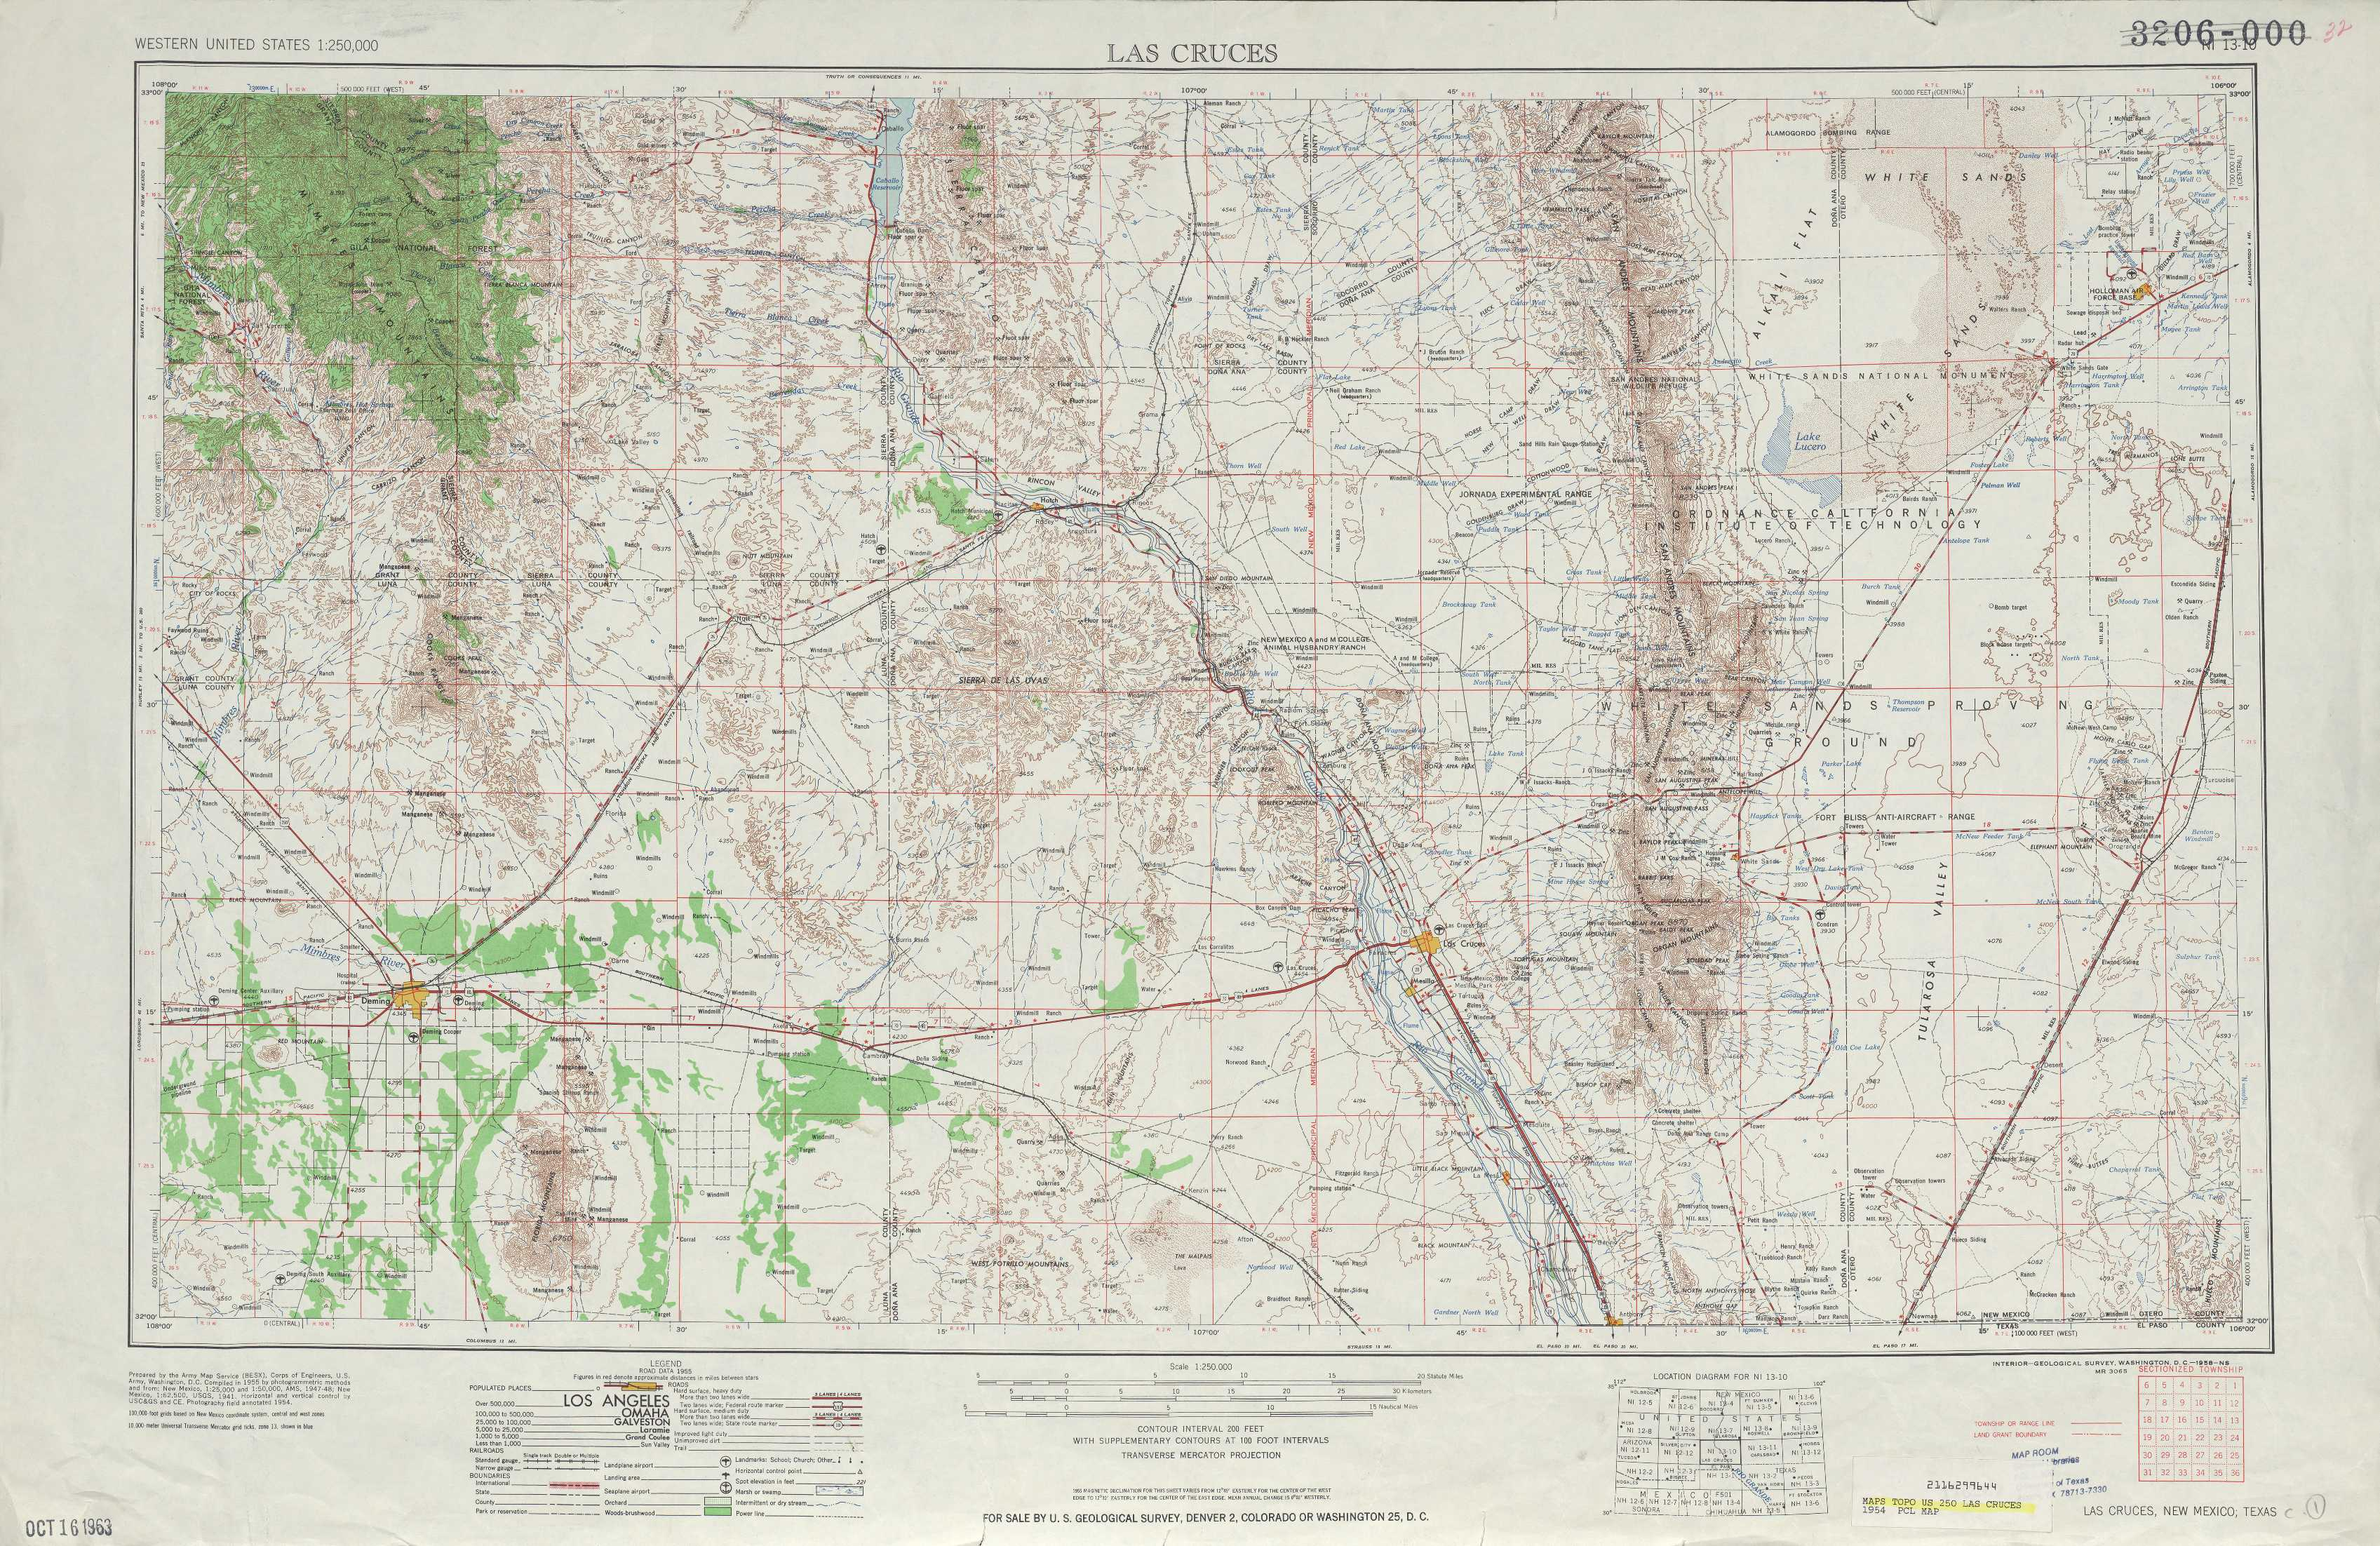 Las Cruces Topographic Maps NM USGS Topo Quad A At - Topographical map of new mexico